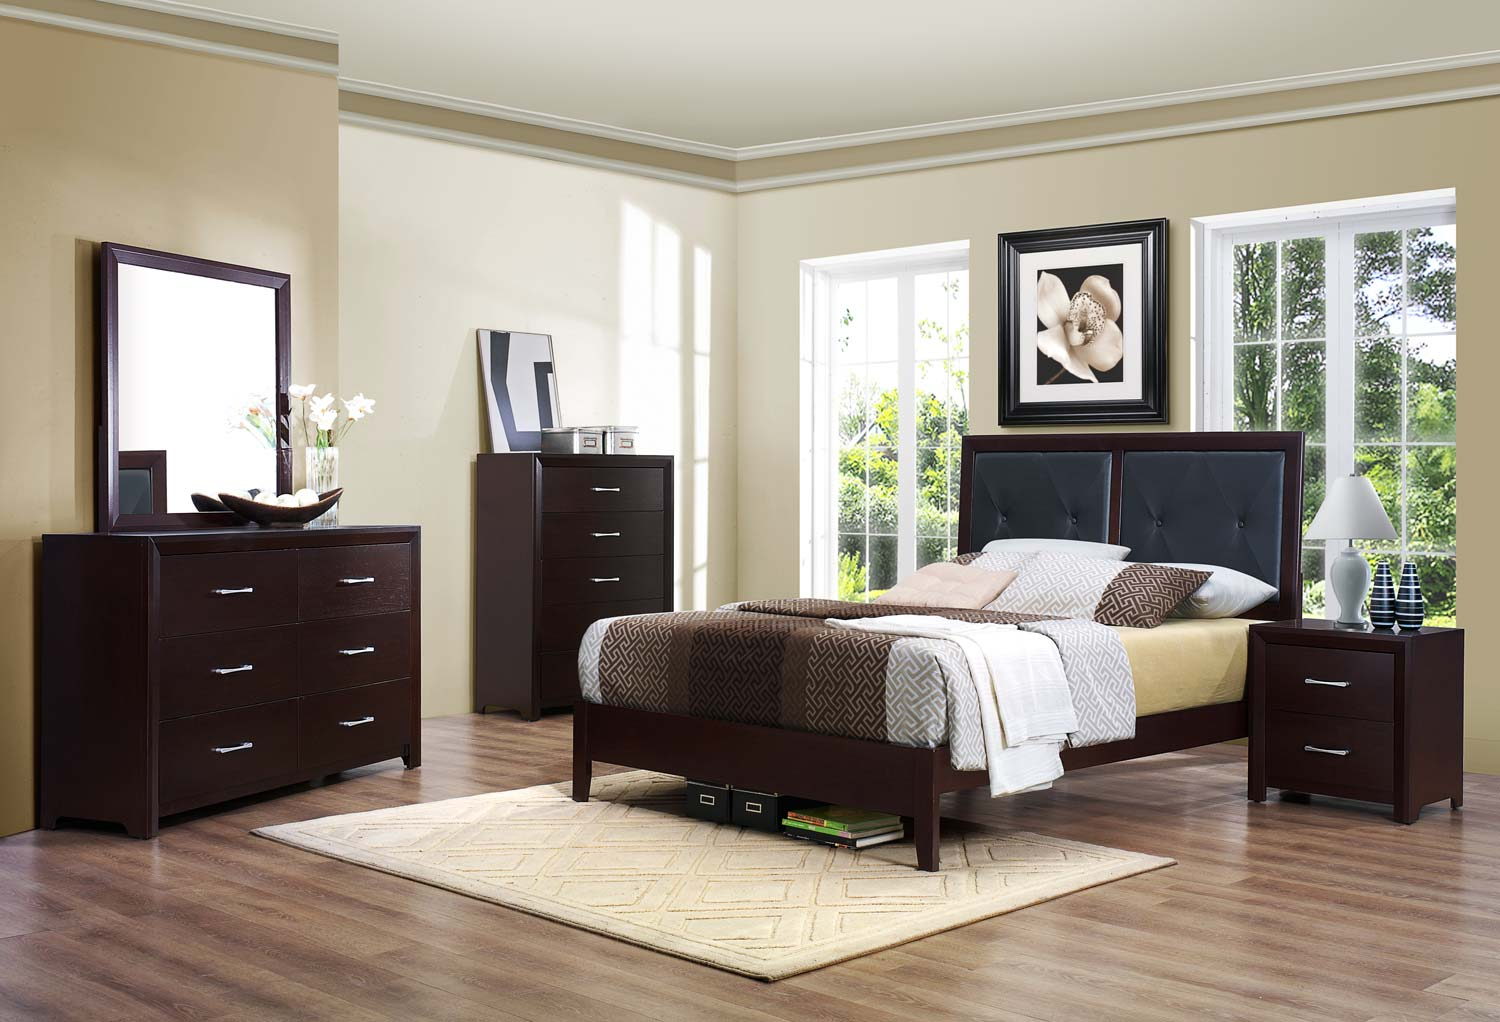 Homelegance Edina Bedroom Set Brown Espresso B2145 BED SET